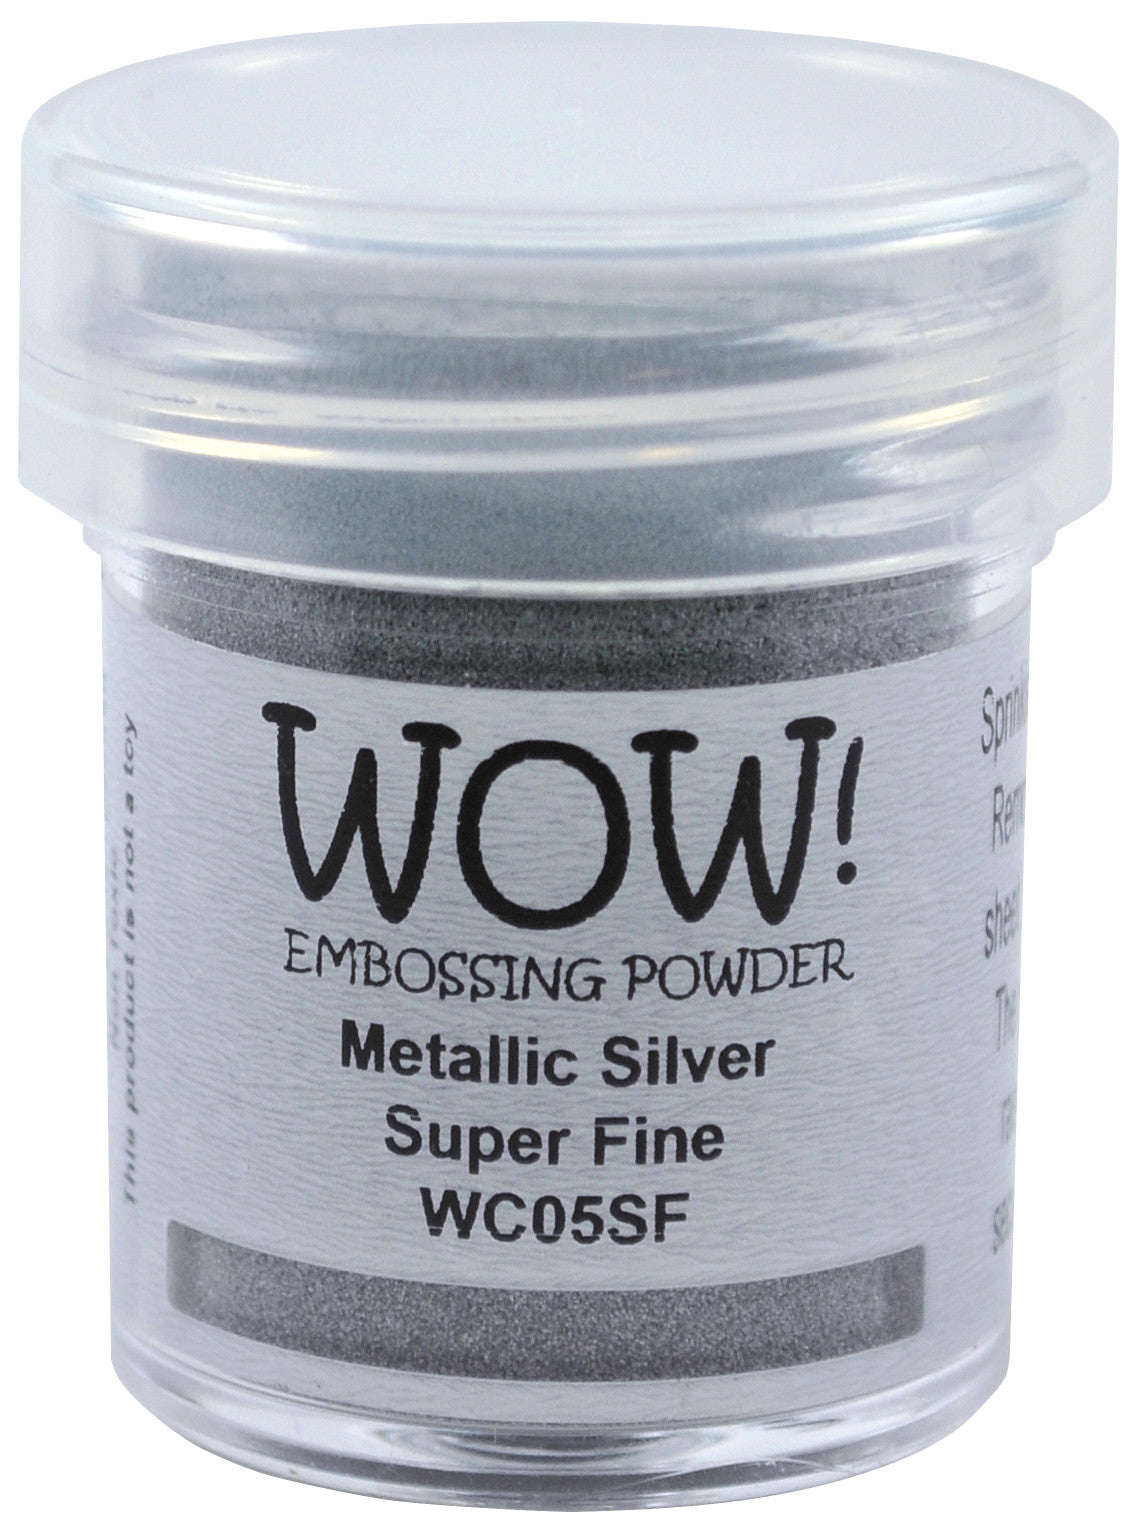 WOW metallic silver embossing powder